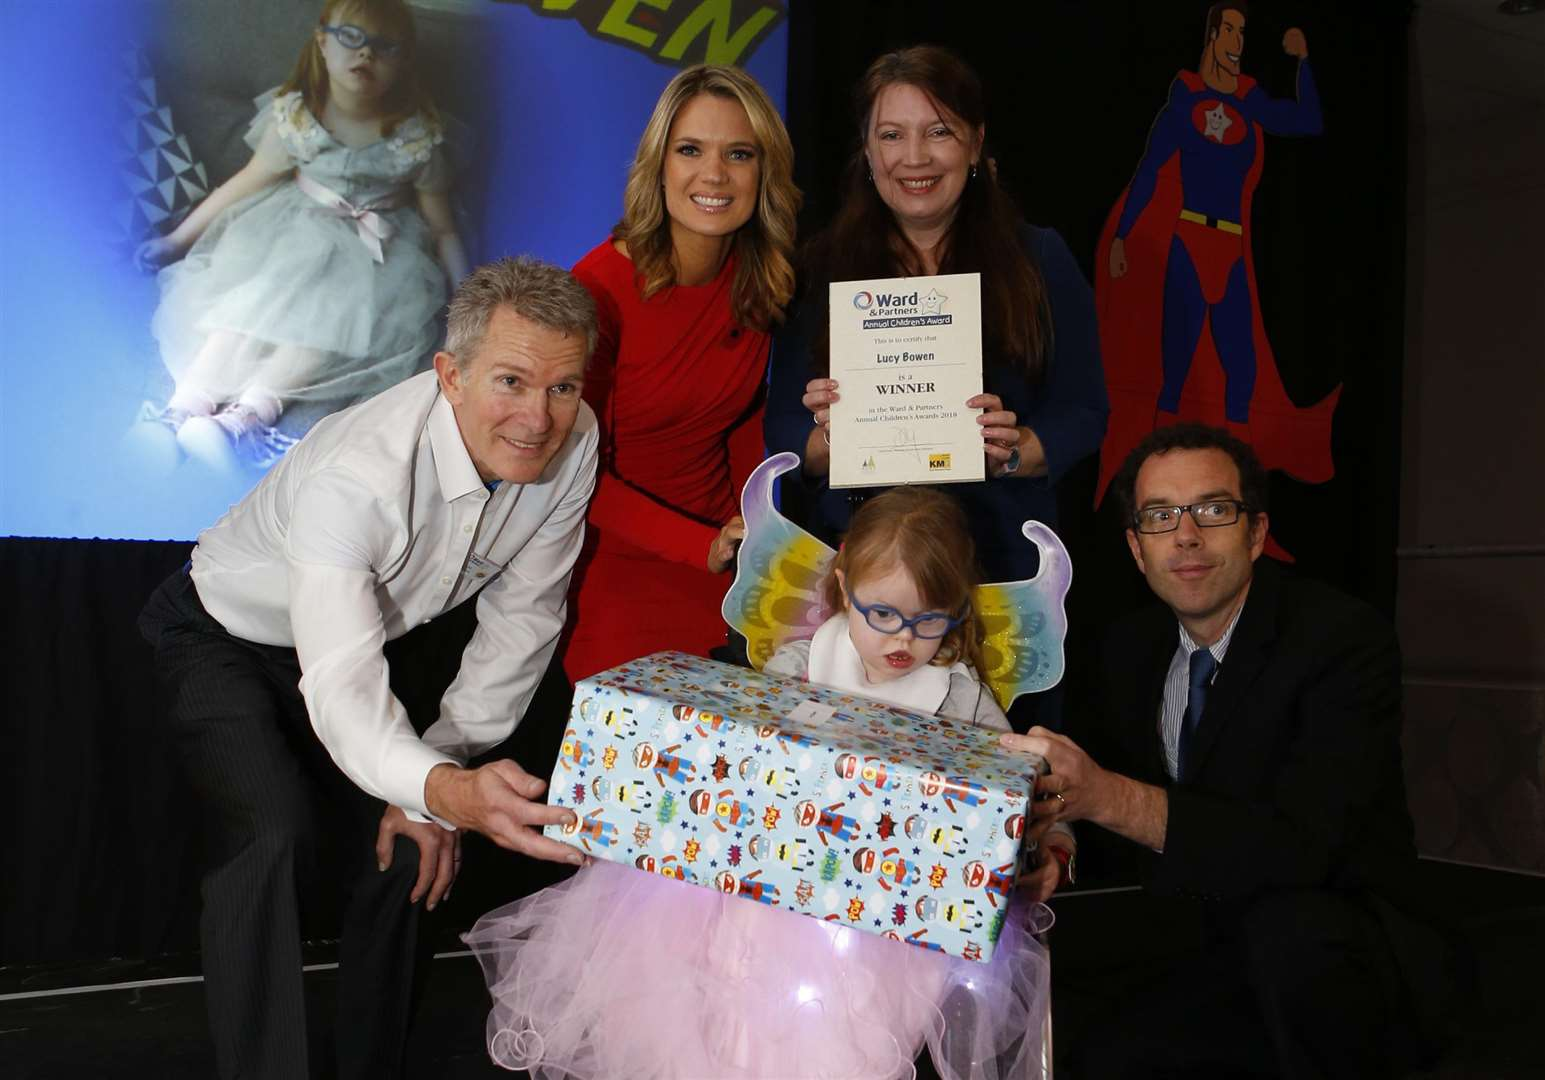 Lucy Bowen winner of Triumph Over Adversity for children aged 6-16 years old with Managing Director for West Kent Lee Crane (Left) and Charlotte Hawkins